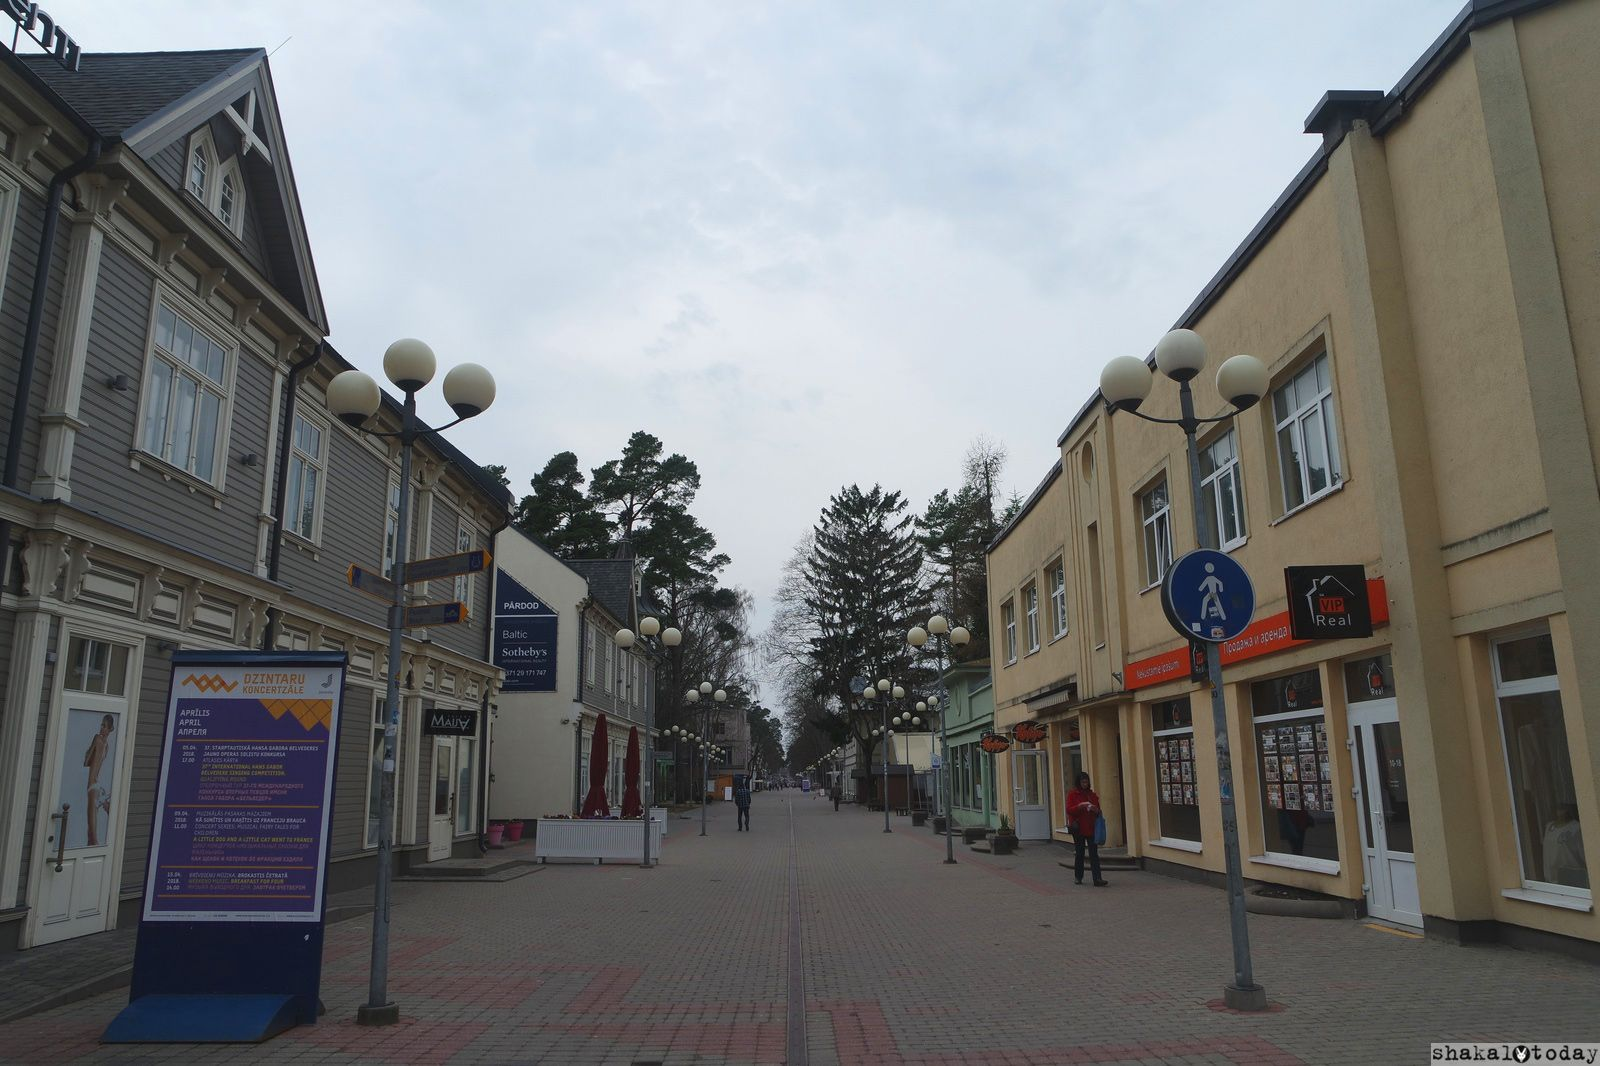 jurmala-shakal-today-0028.jpg